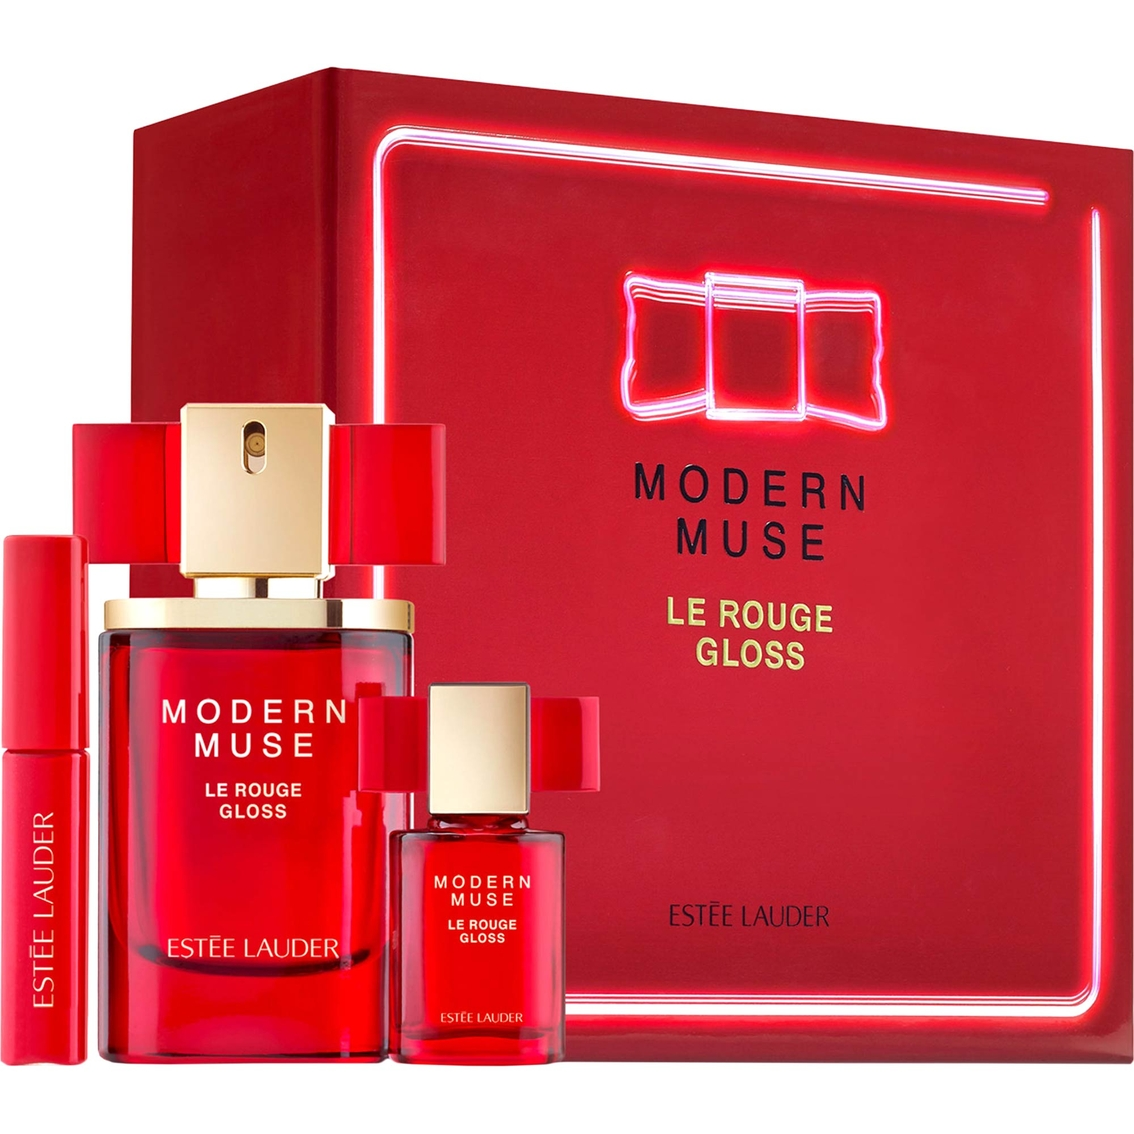 Estee Lauder Modern Muse Le Rouge Gloss 3 Pc Limited Edition Set For Women